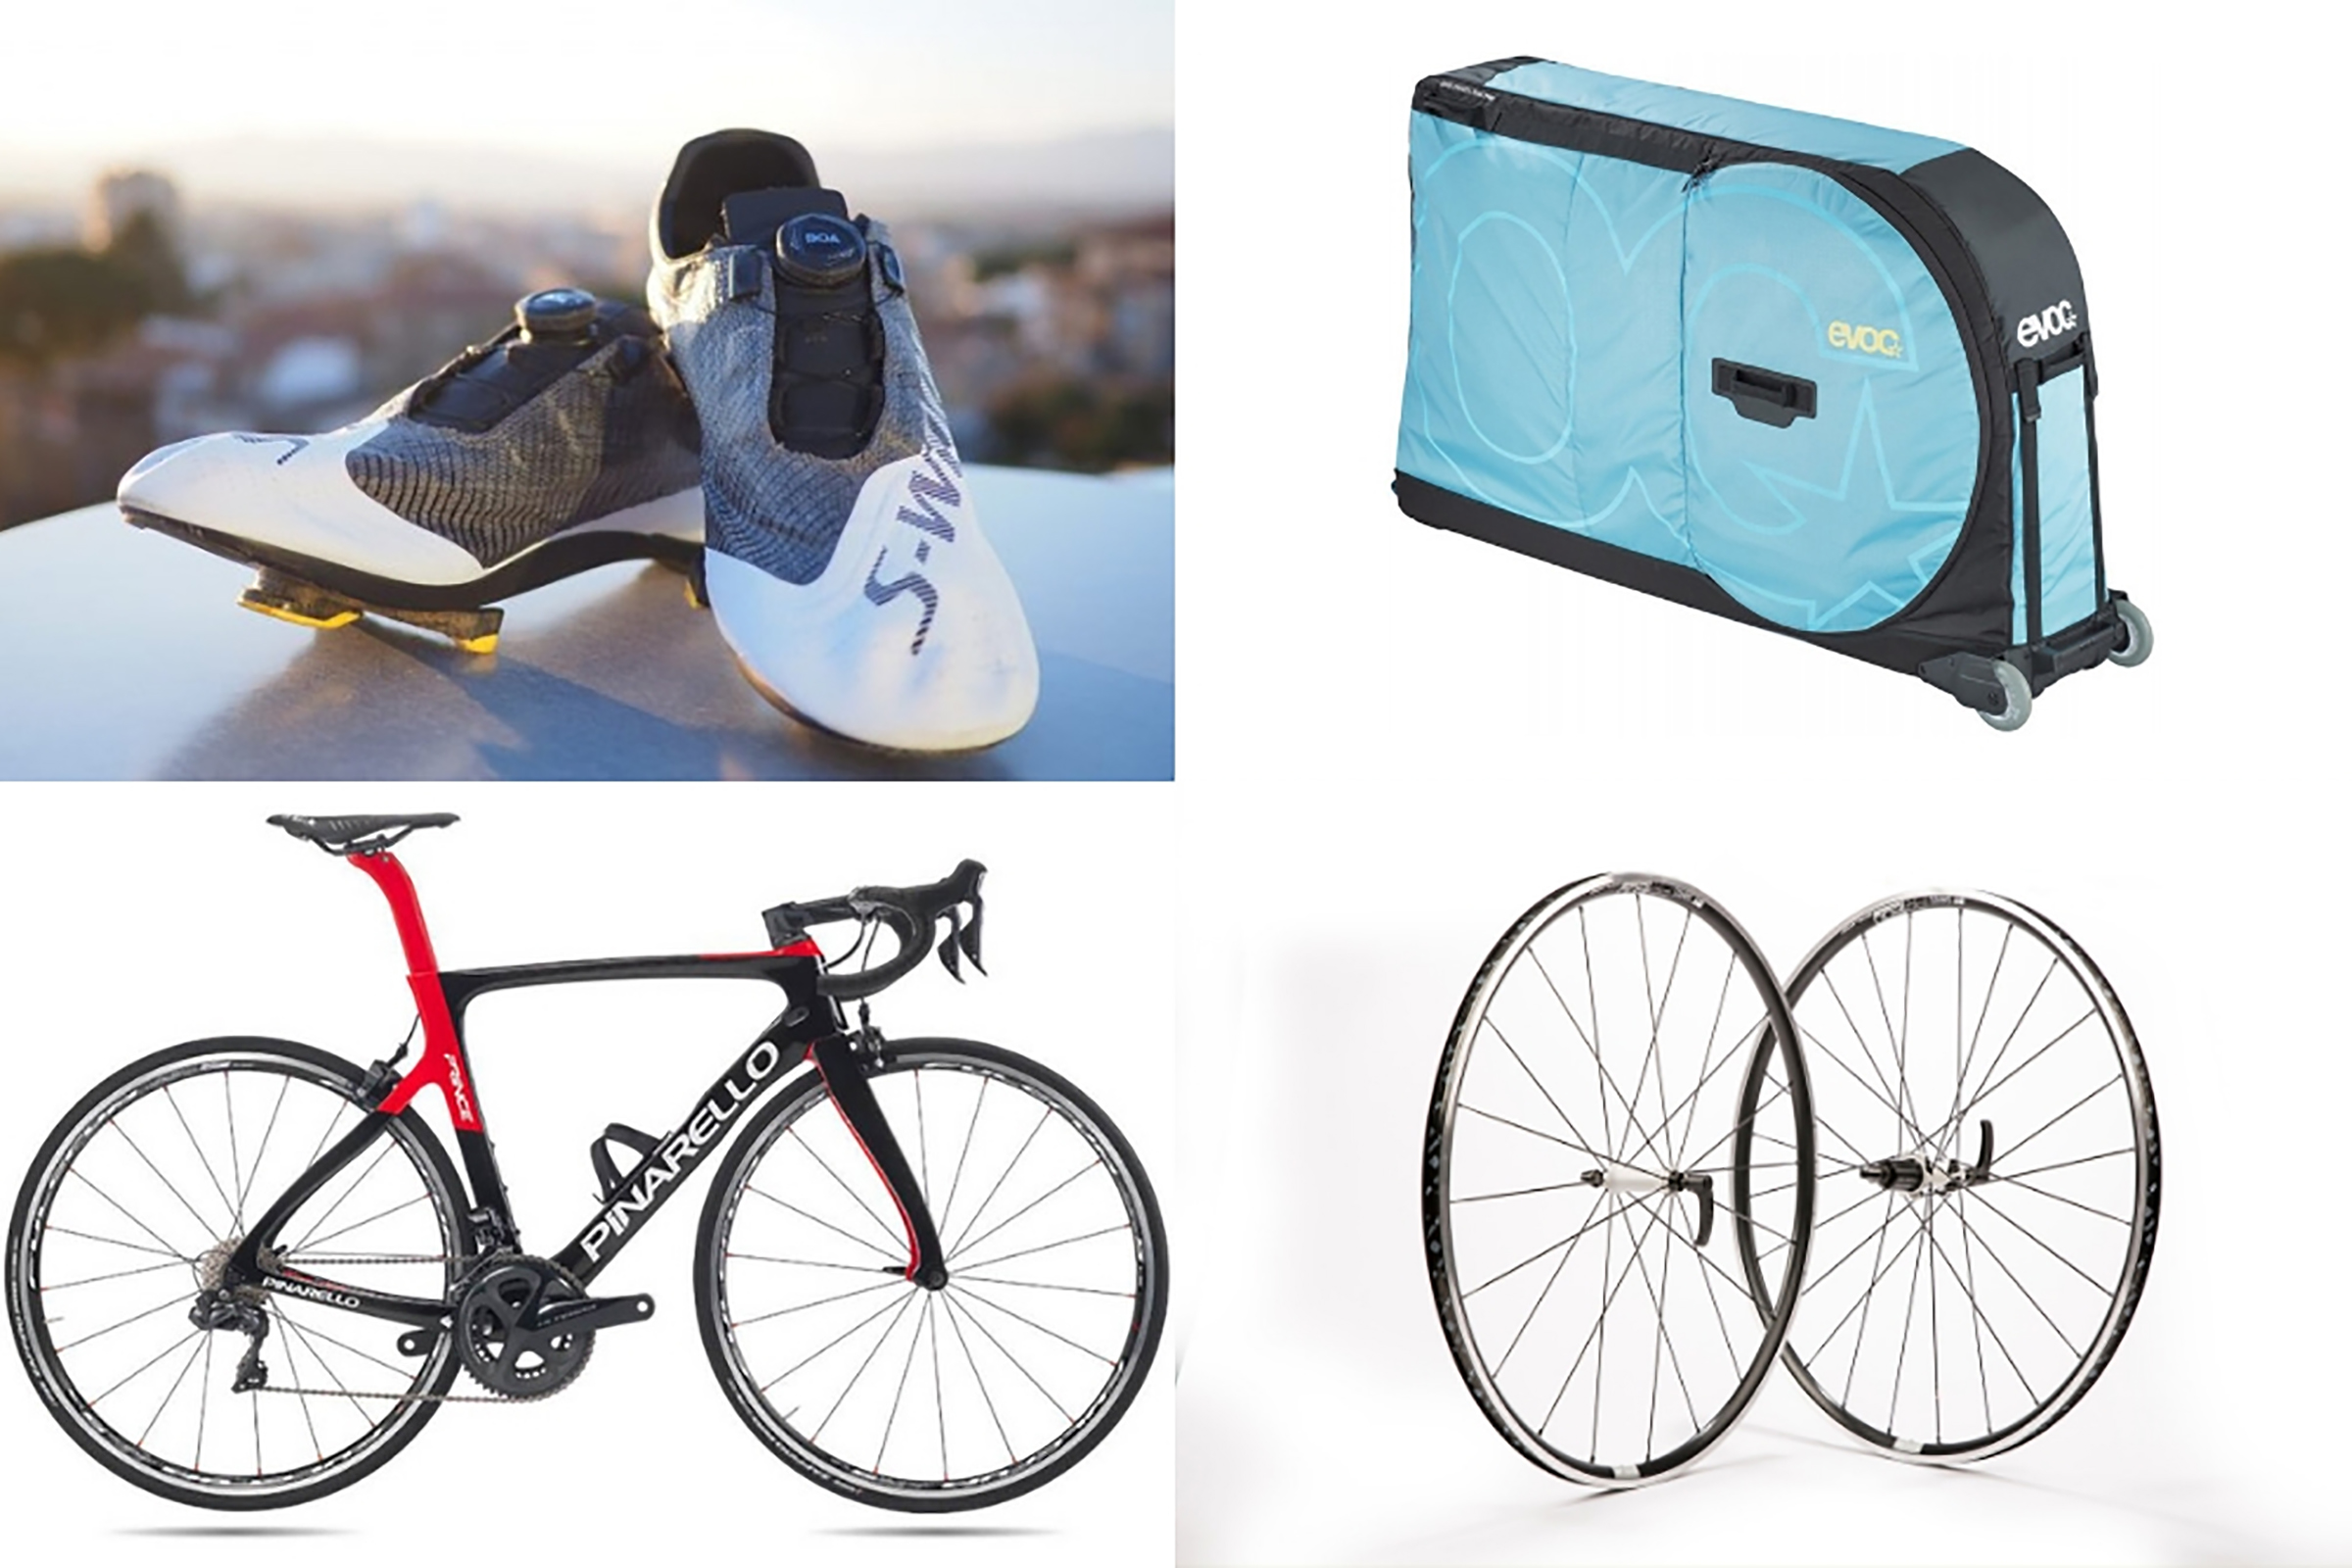 9684e632e0c March's Tech of the Month: Pinarello, new Specialized shoes, DT Swiss  wheels and Evoc's bike bag 27:06